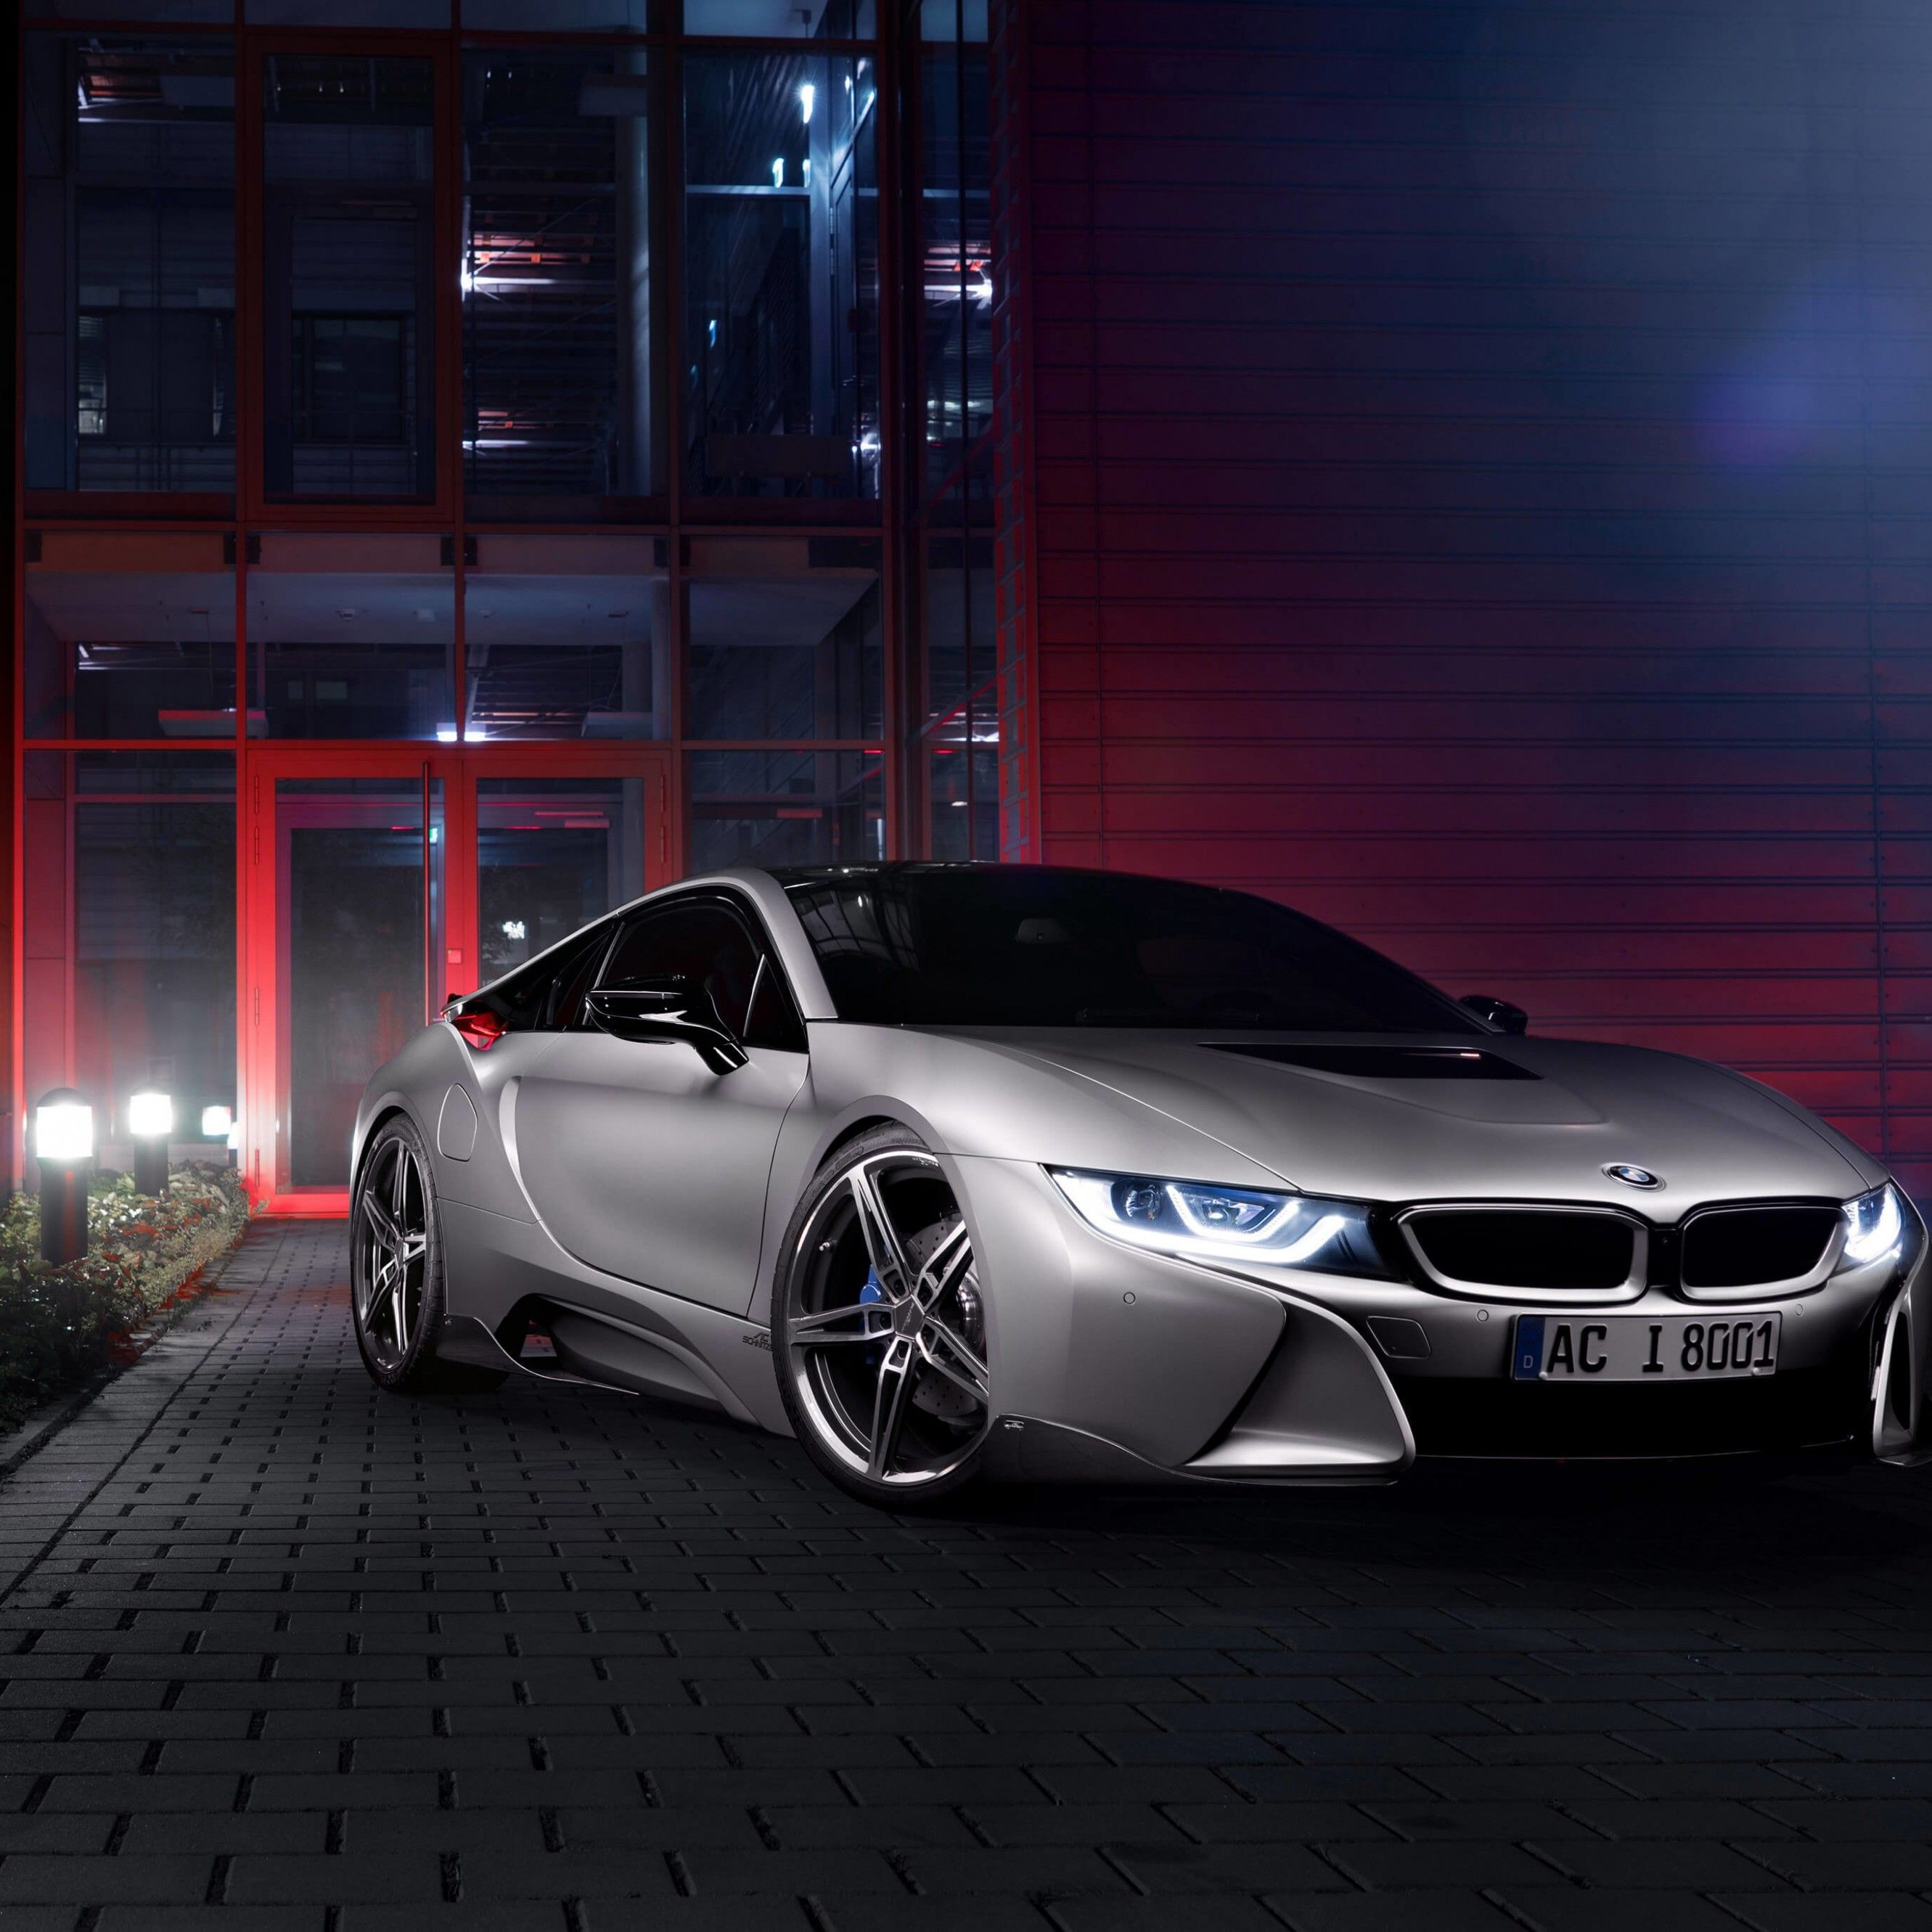 Download Bmw I8 Designed By Ac Schnitzer Hd Wallpaper For Iphone 6